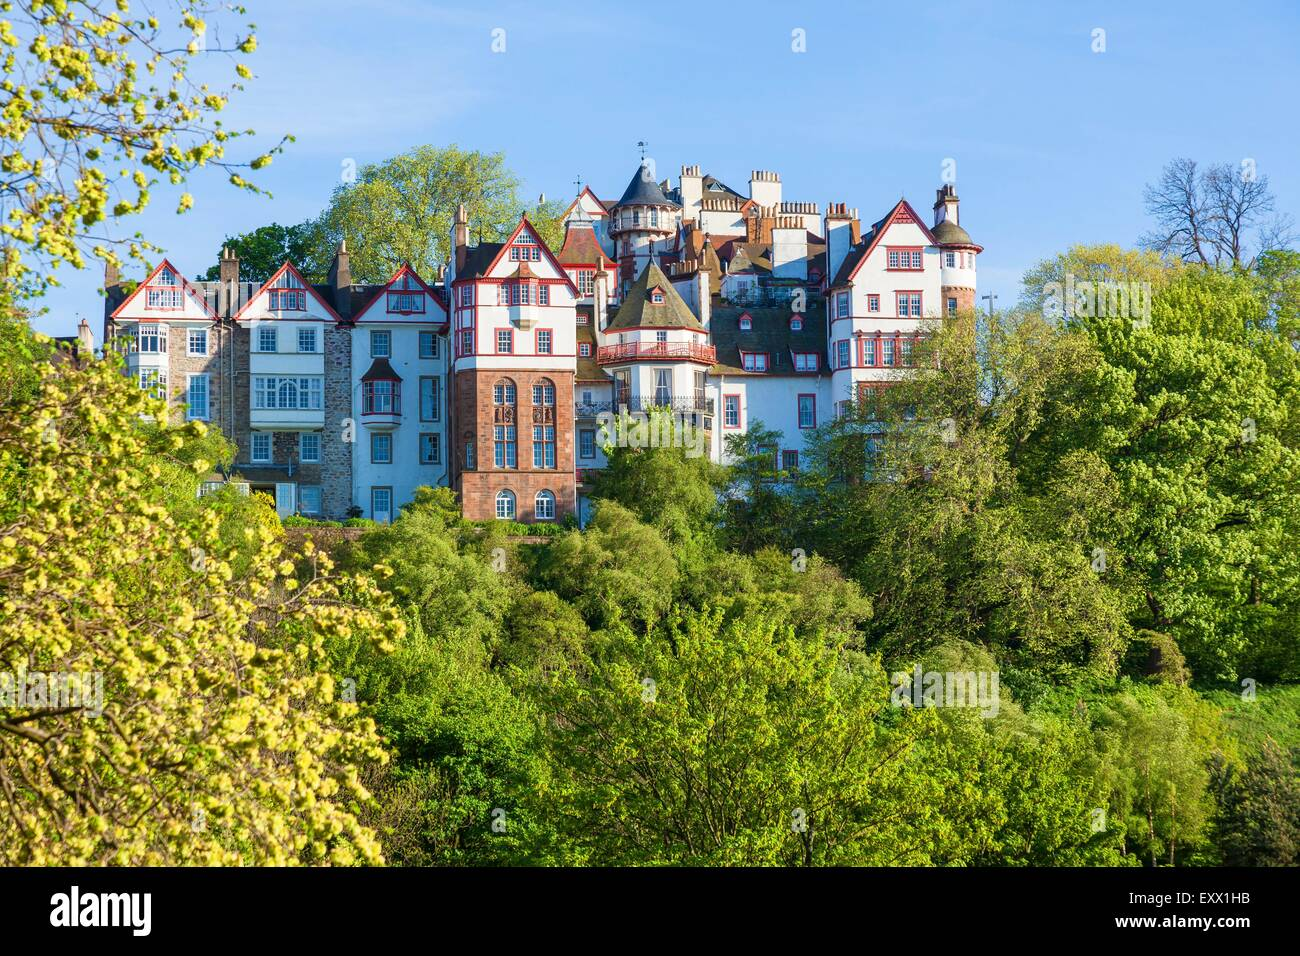 Houses, Princes Street Gardens, Edinburgh, Scotland, Europe - Stock Image